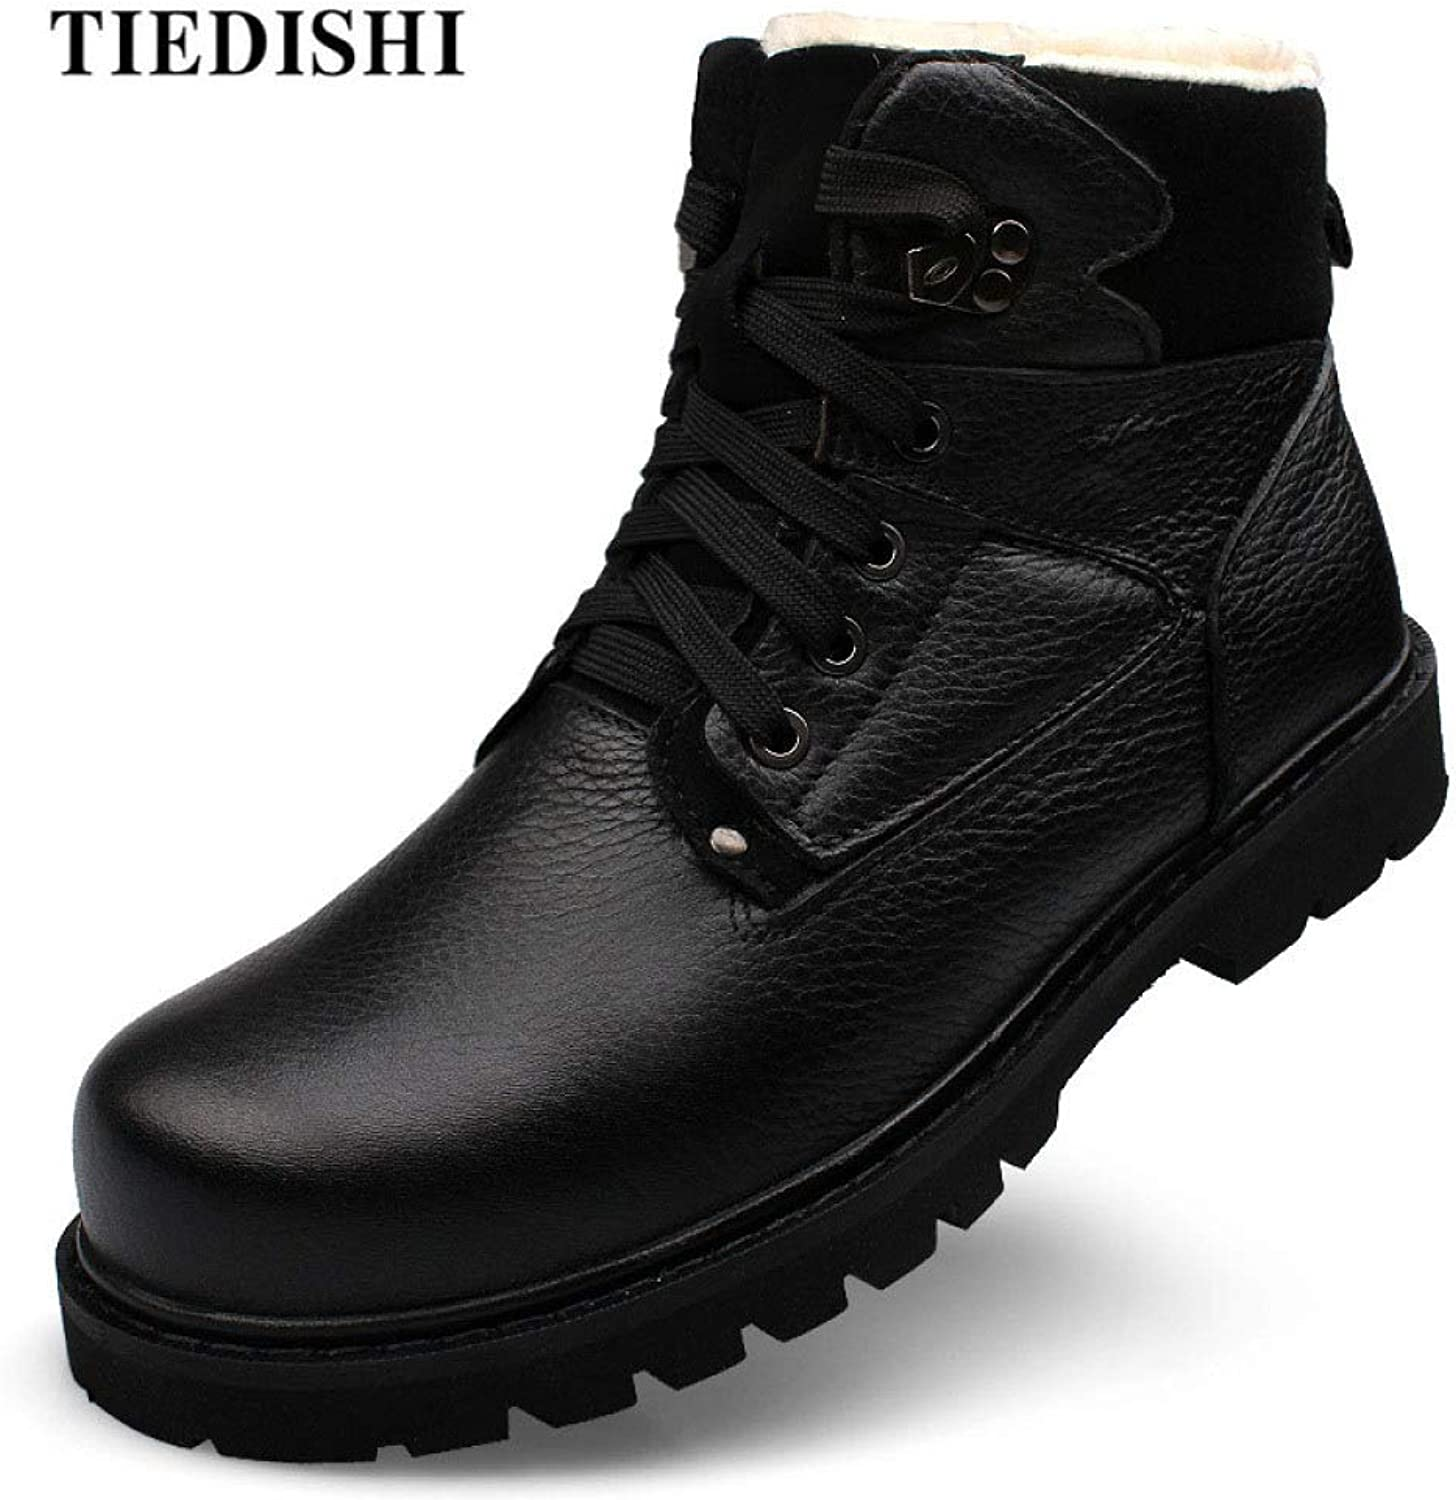 LIJUN Martin Boots Outdoor Working Men shoes Genuine Leather Autumn Winter Waterproof Ankle Size 38-47